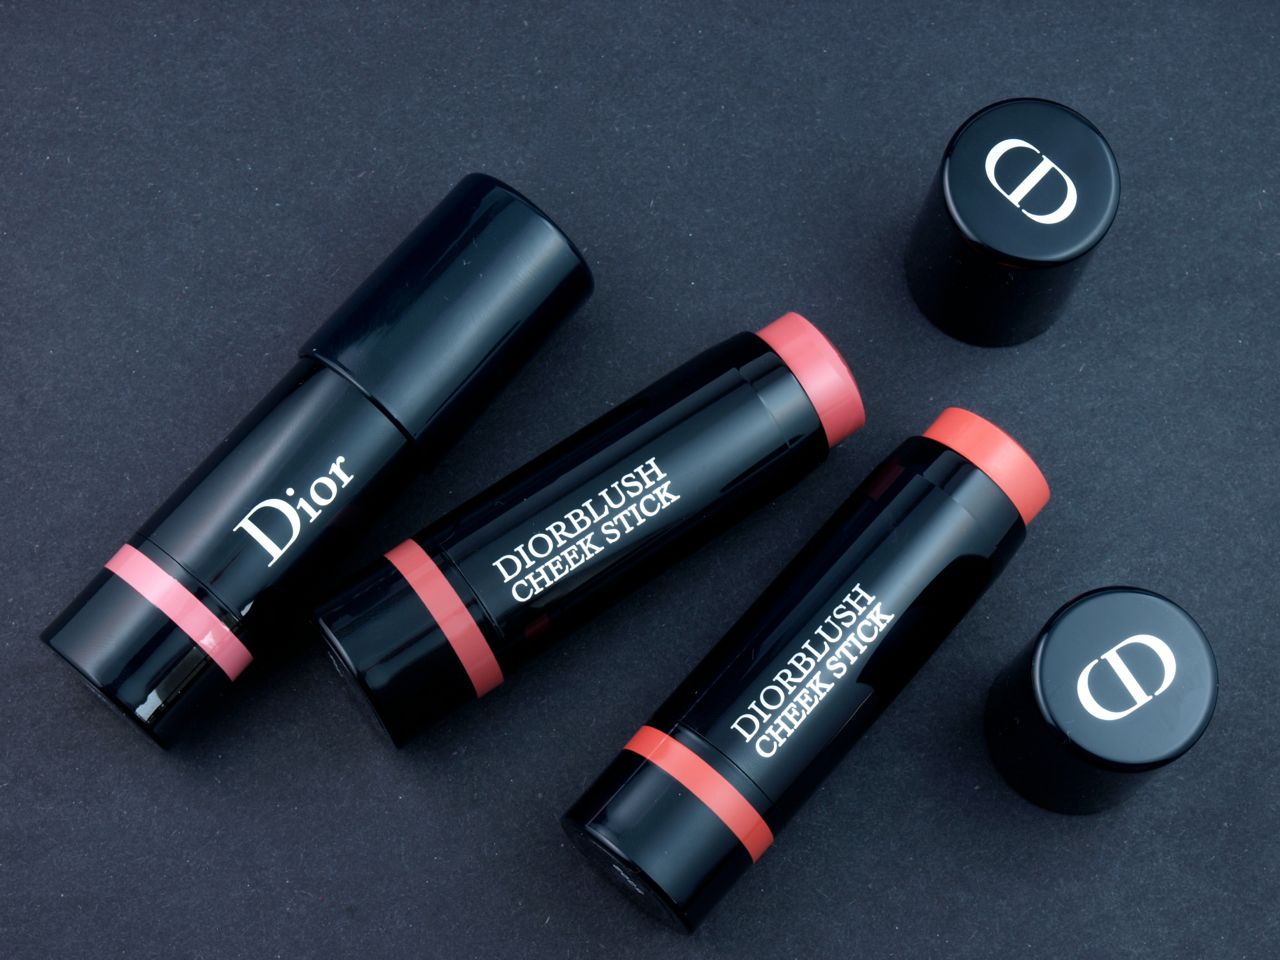 Dior Fall 2015 DiorBlush Cheek Stick Velvet Color Cream Blush: Review and Swatches